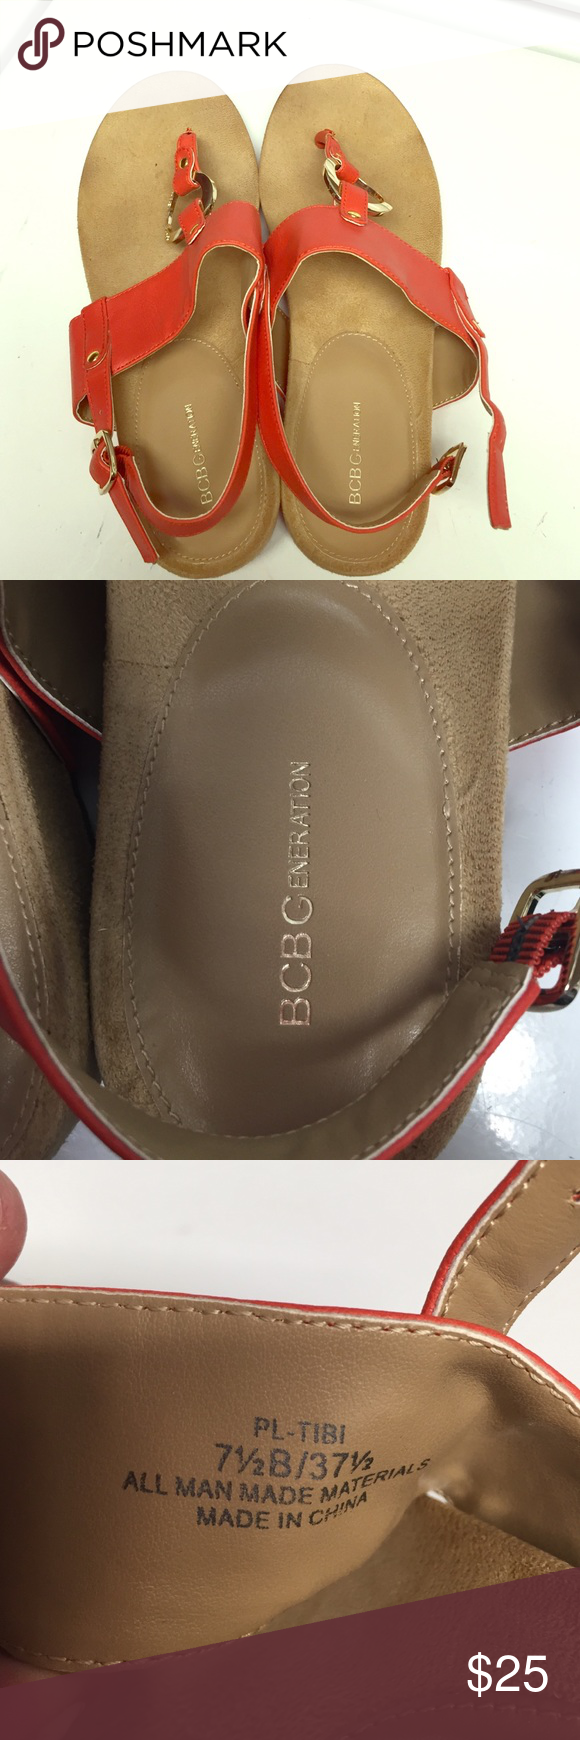 Like new bcbg Sandals So sexy you will have everyone asking U where u got these hot Sandals!!! BCBG Shoes Sandals